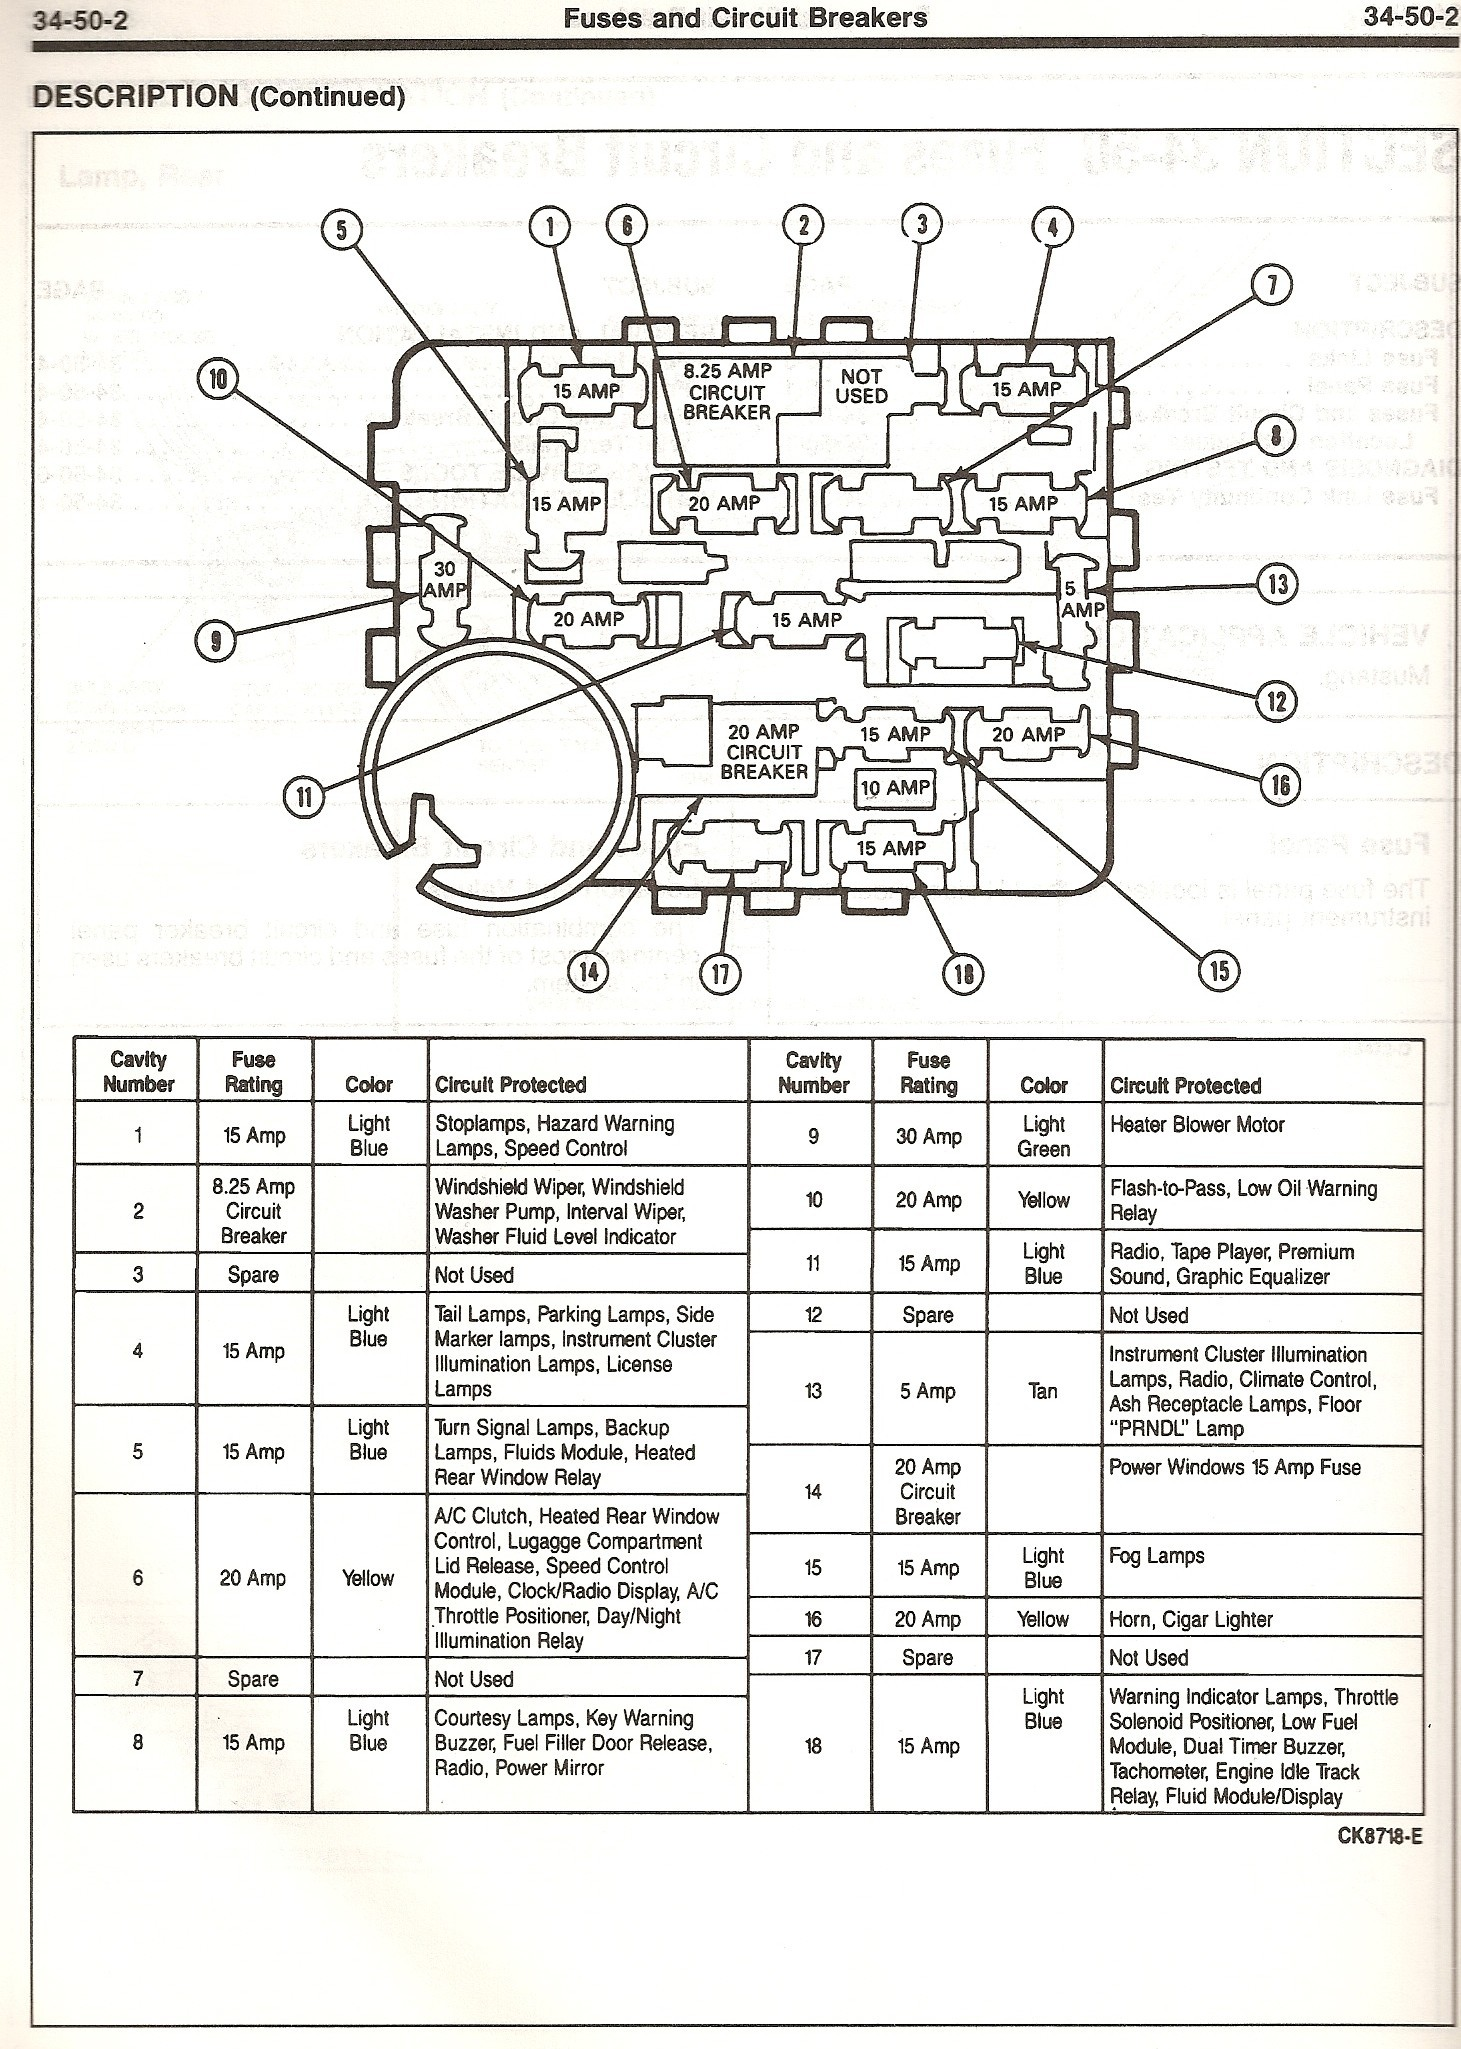 99 ford explorer fuse diagram infinity basslink wiring 05 box library